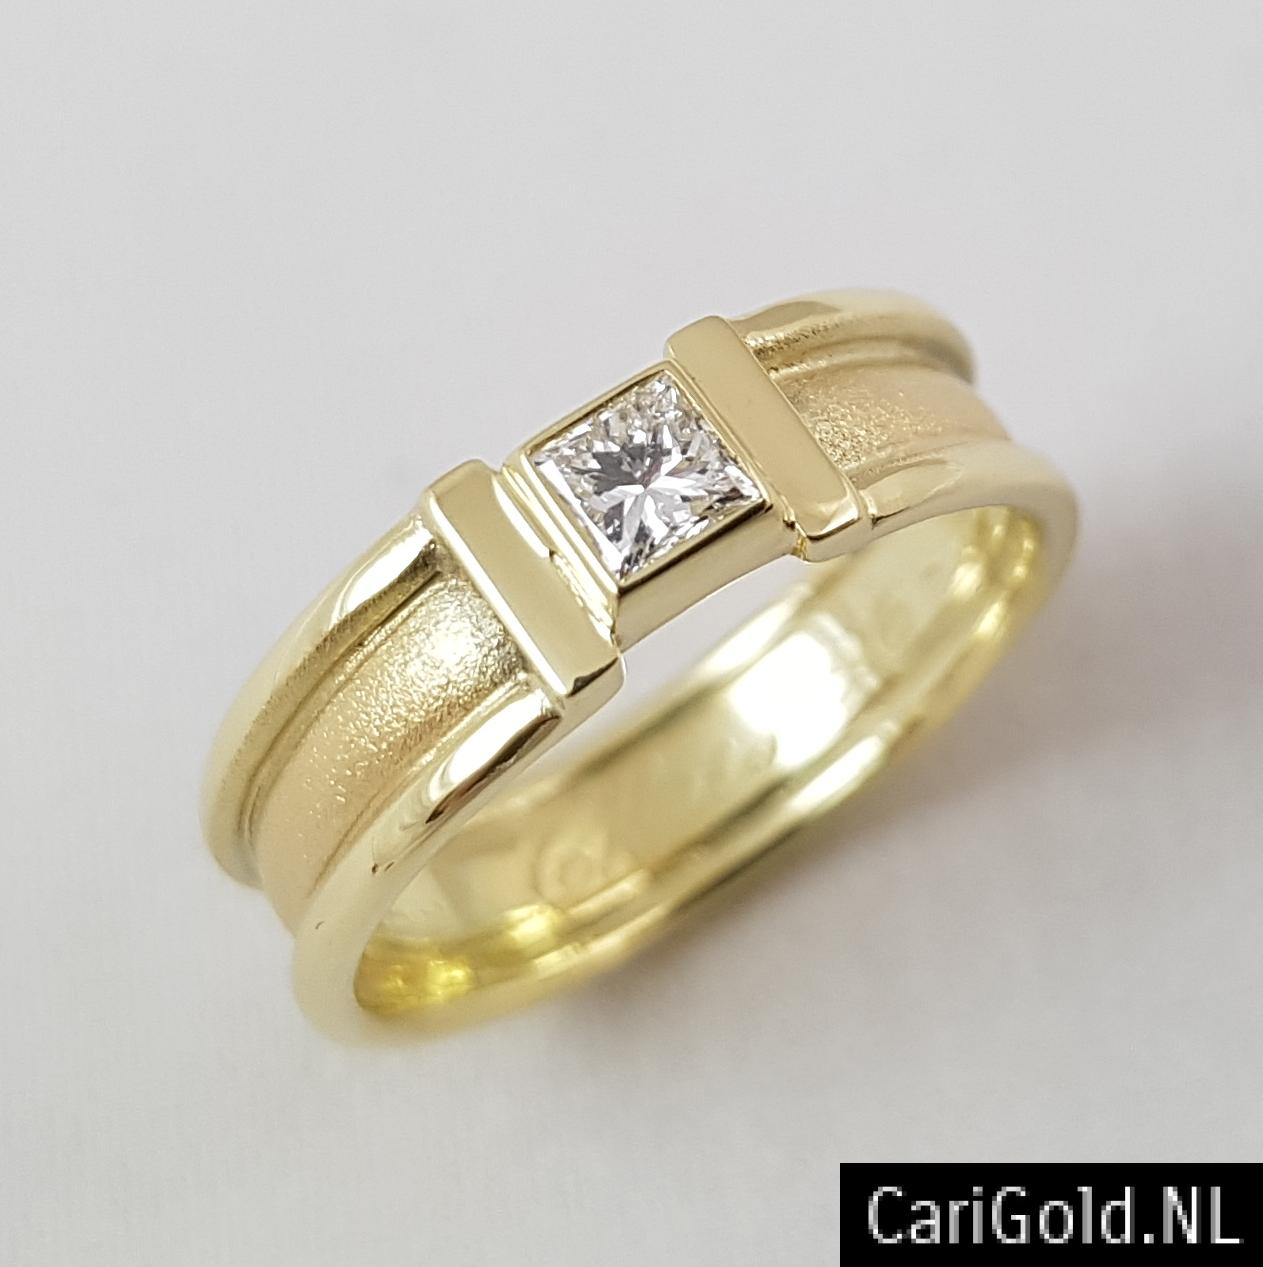 CariGold_nl_ring_14K_Goud_Princess_Diamant